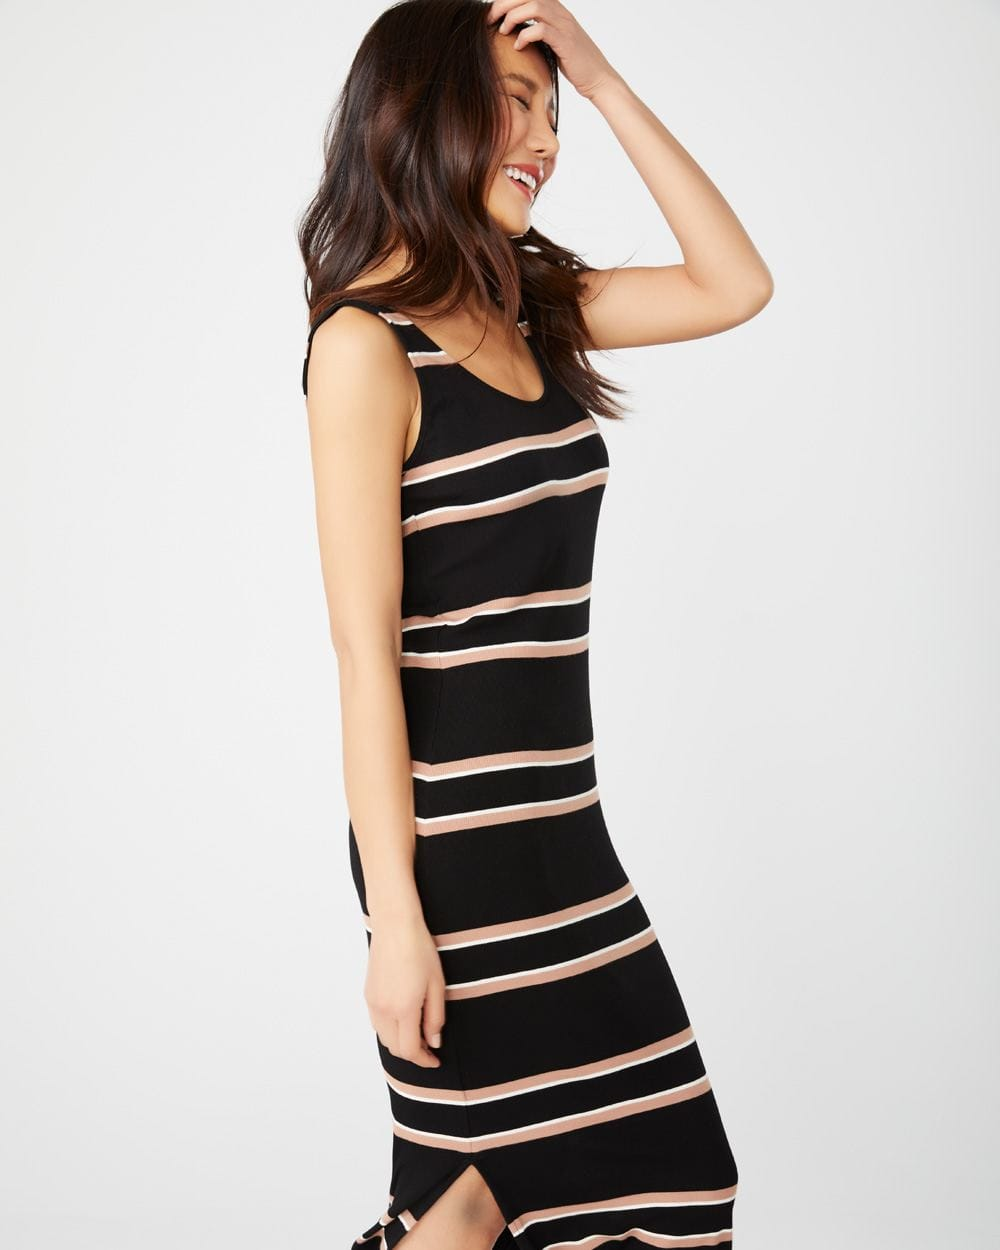 Striped Bodycon midi dress